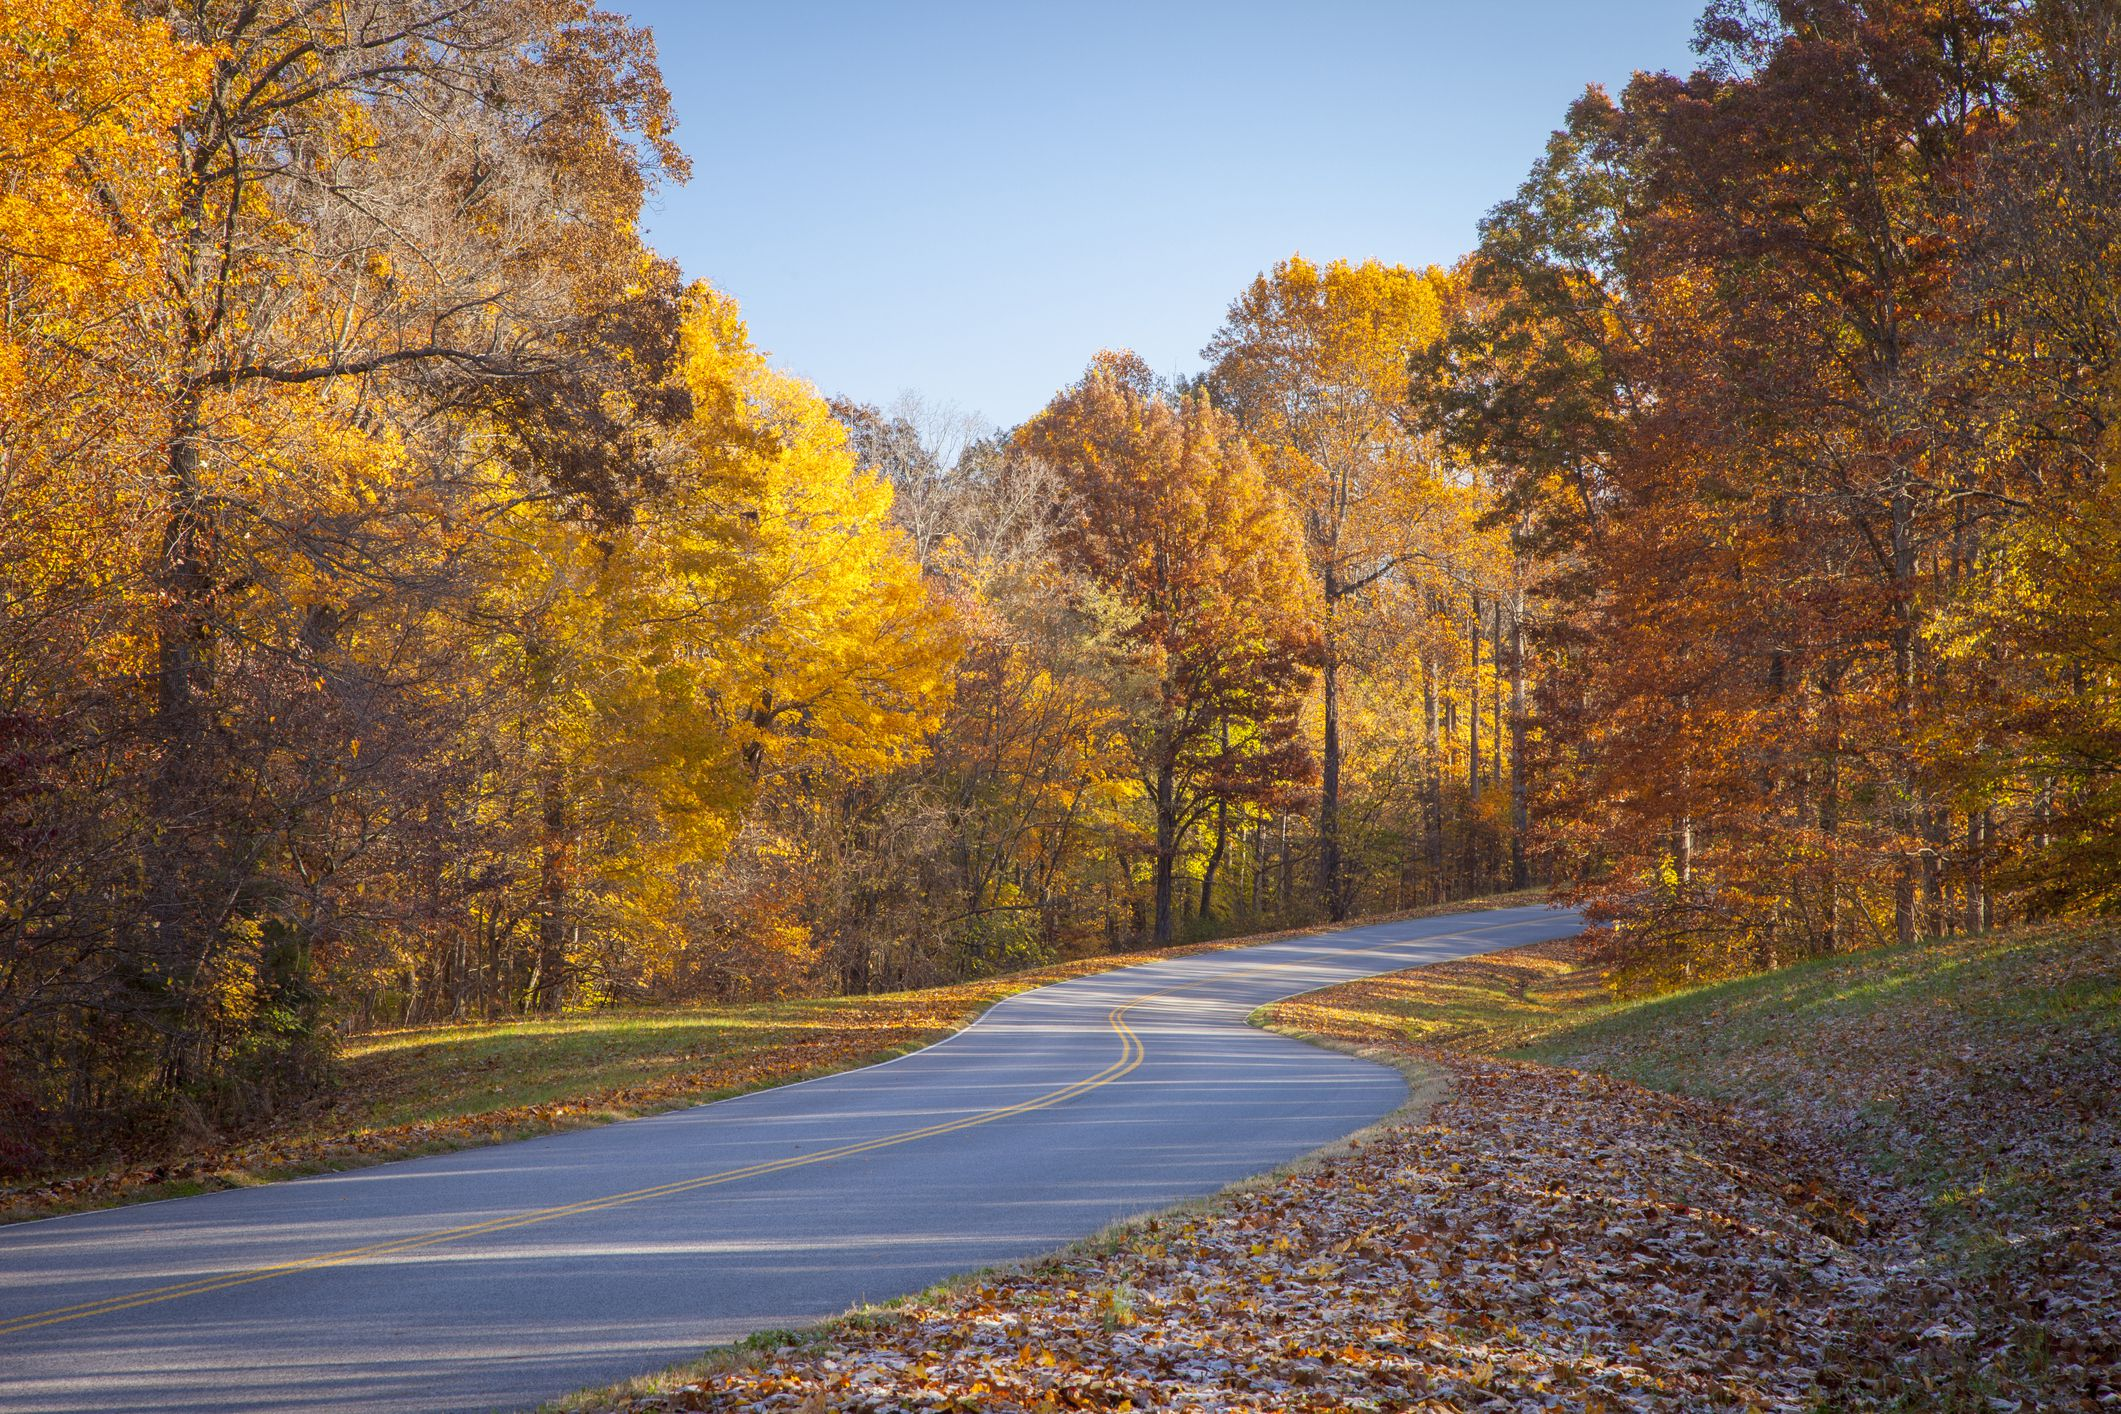 Autumn colors along historic Natchez Trace Parkway, Tennessee, USA